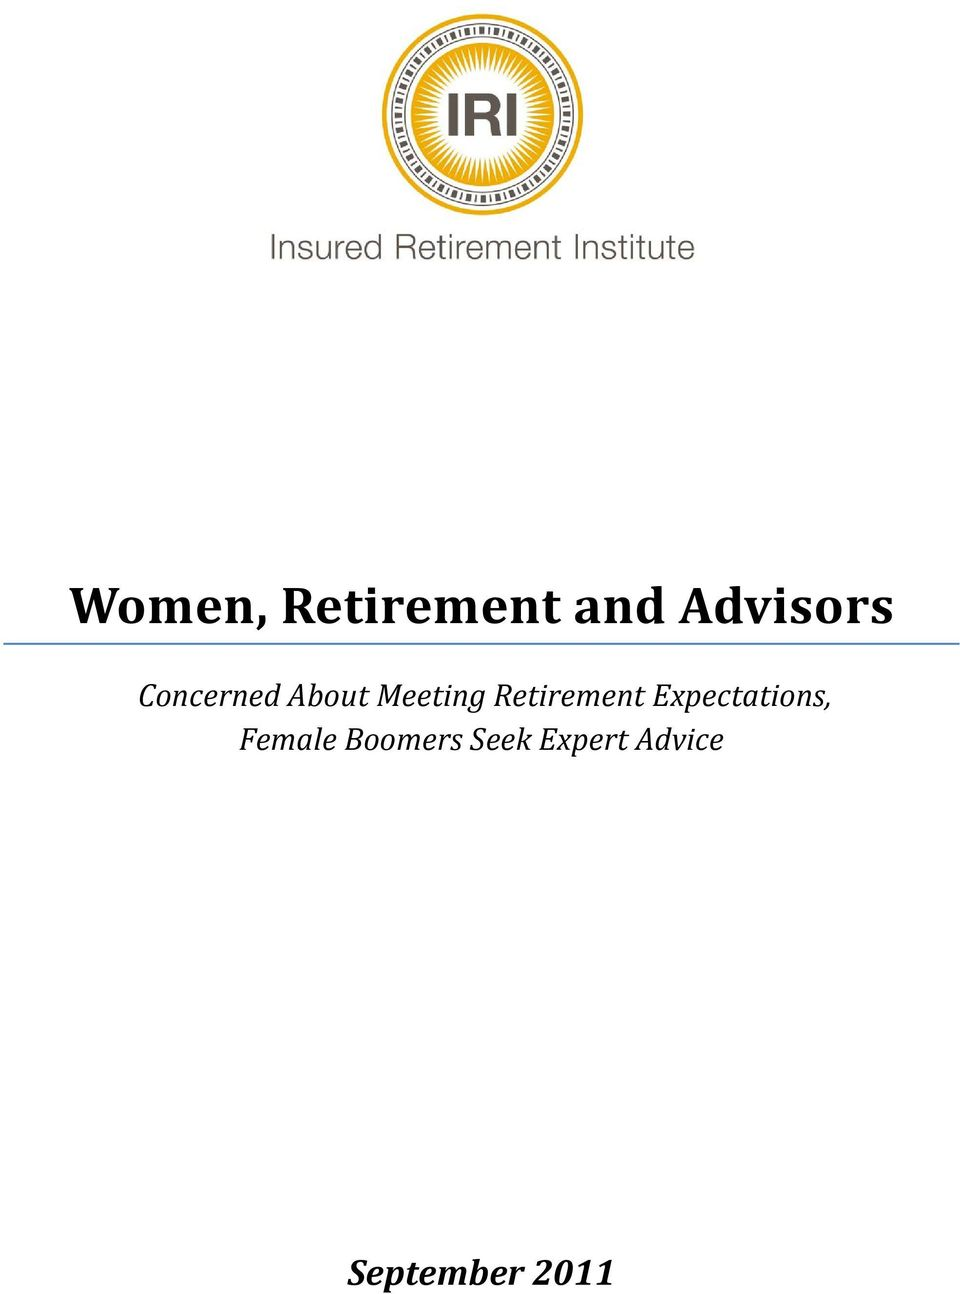 Retirement Expectations, Female